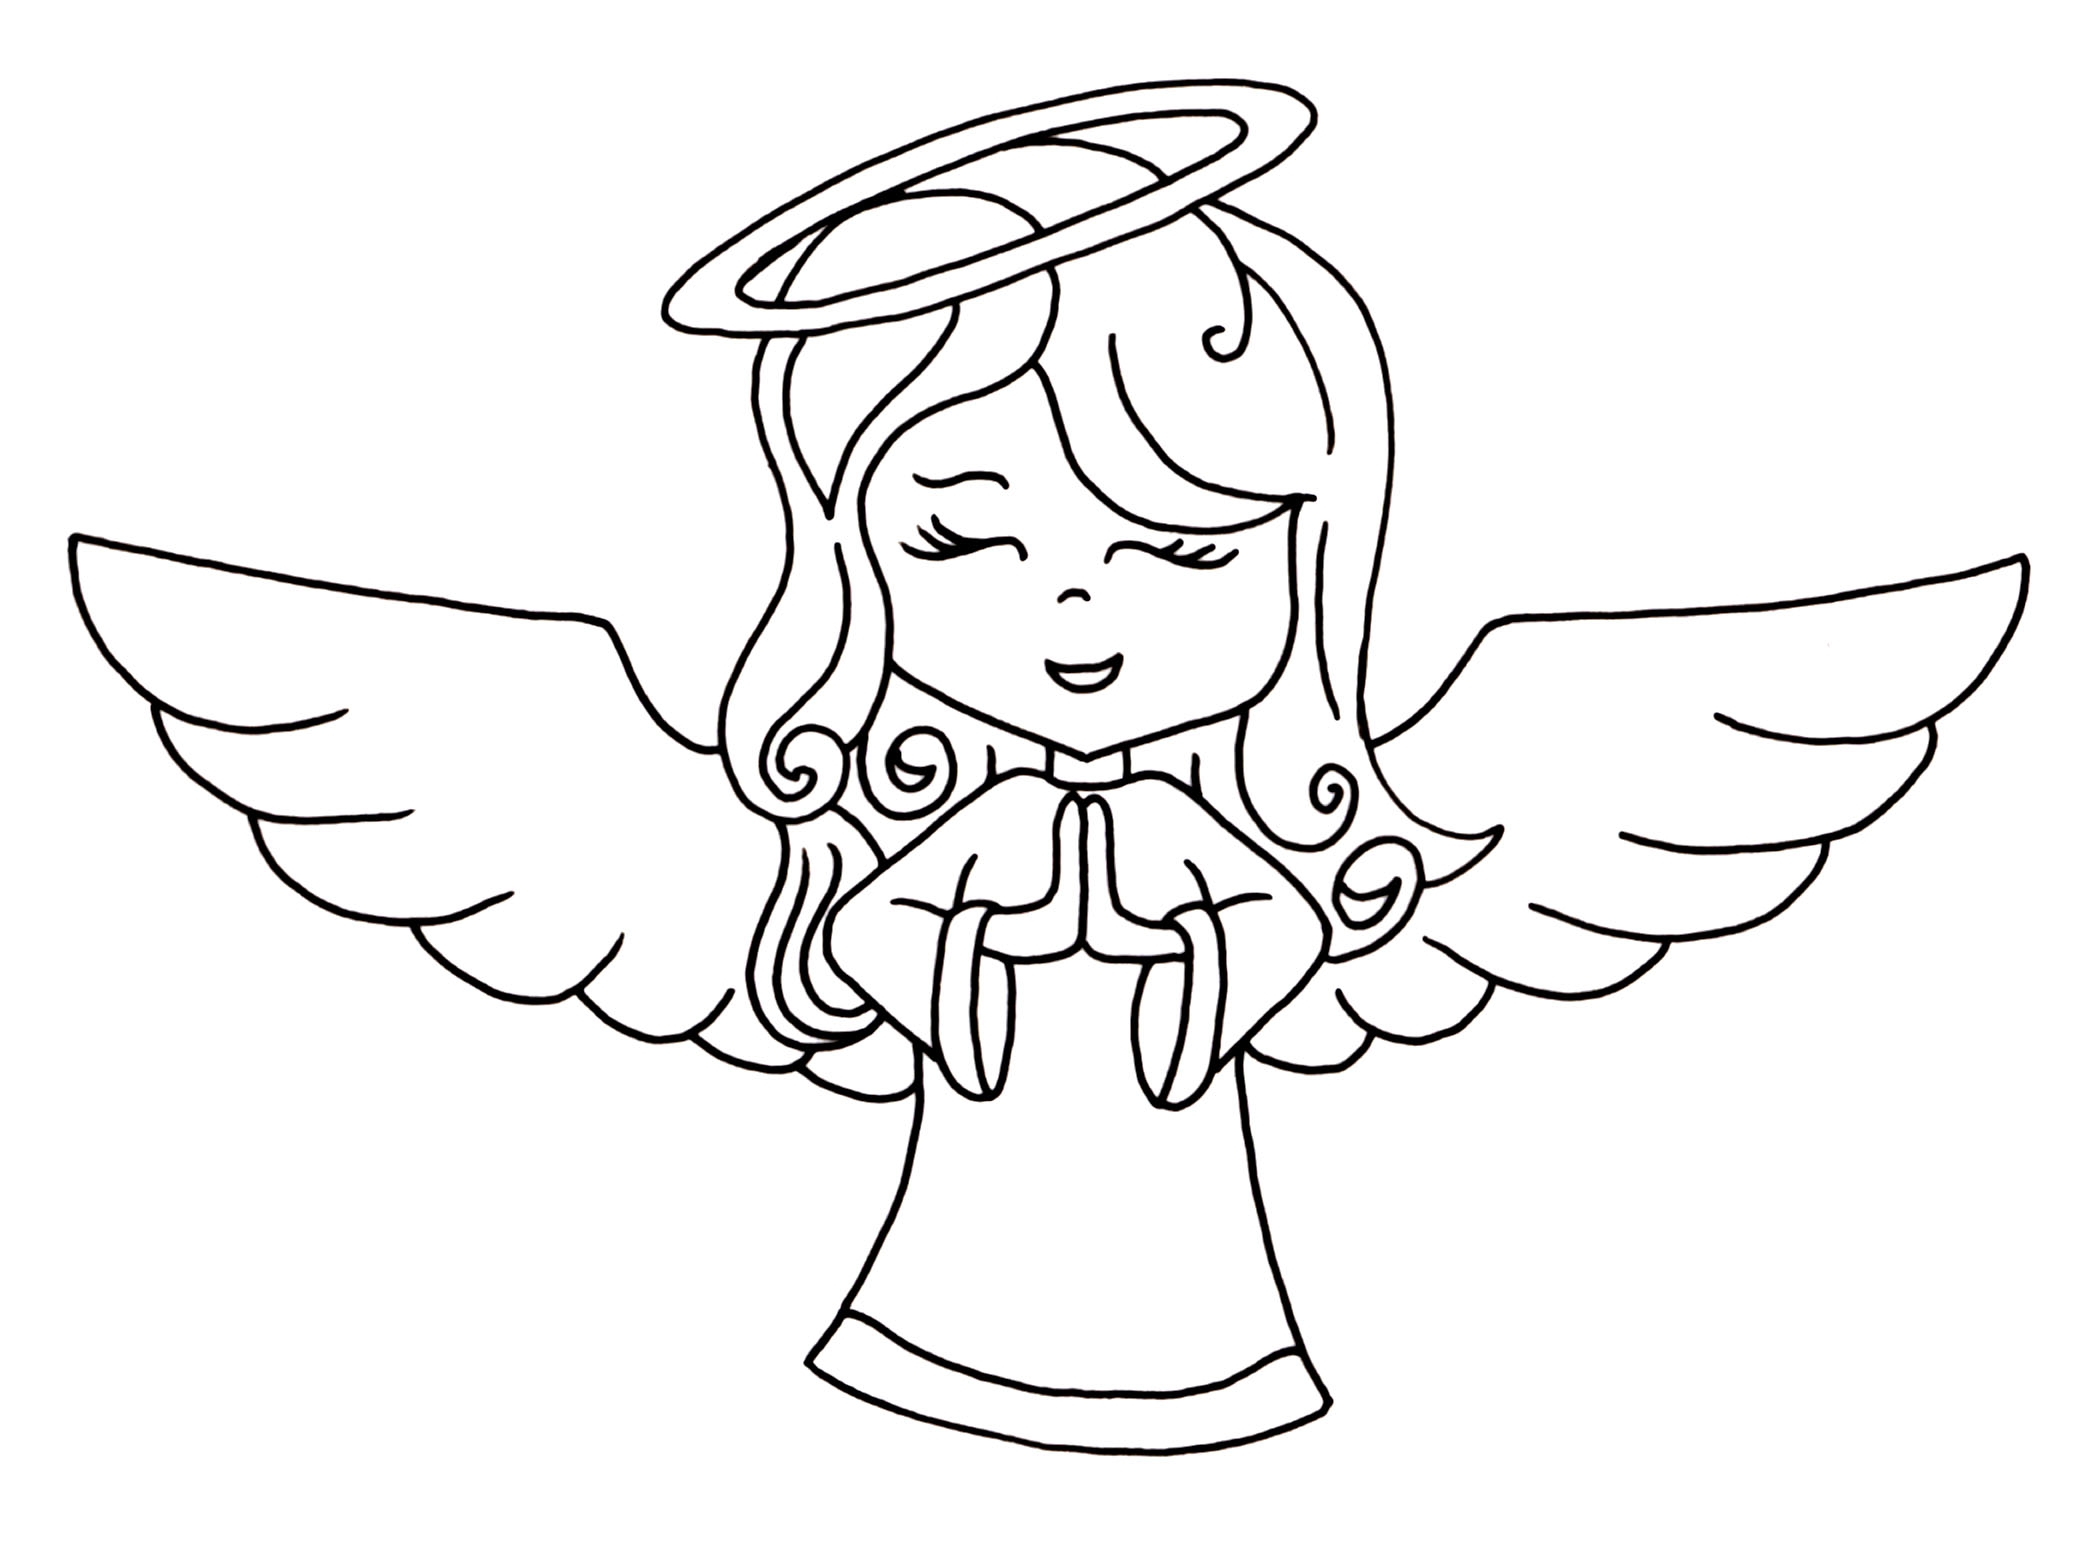 Angel clipart black and white Lovely Angel Line Drawing Clip Art 54.